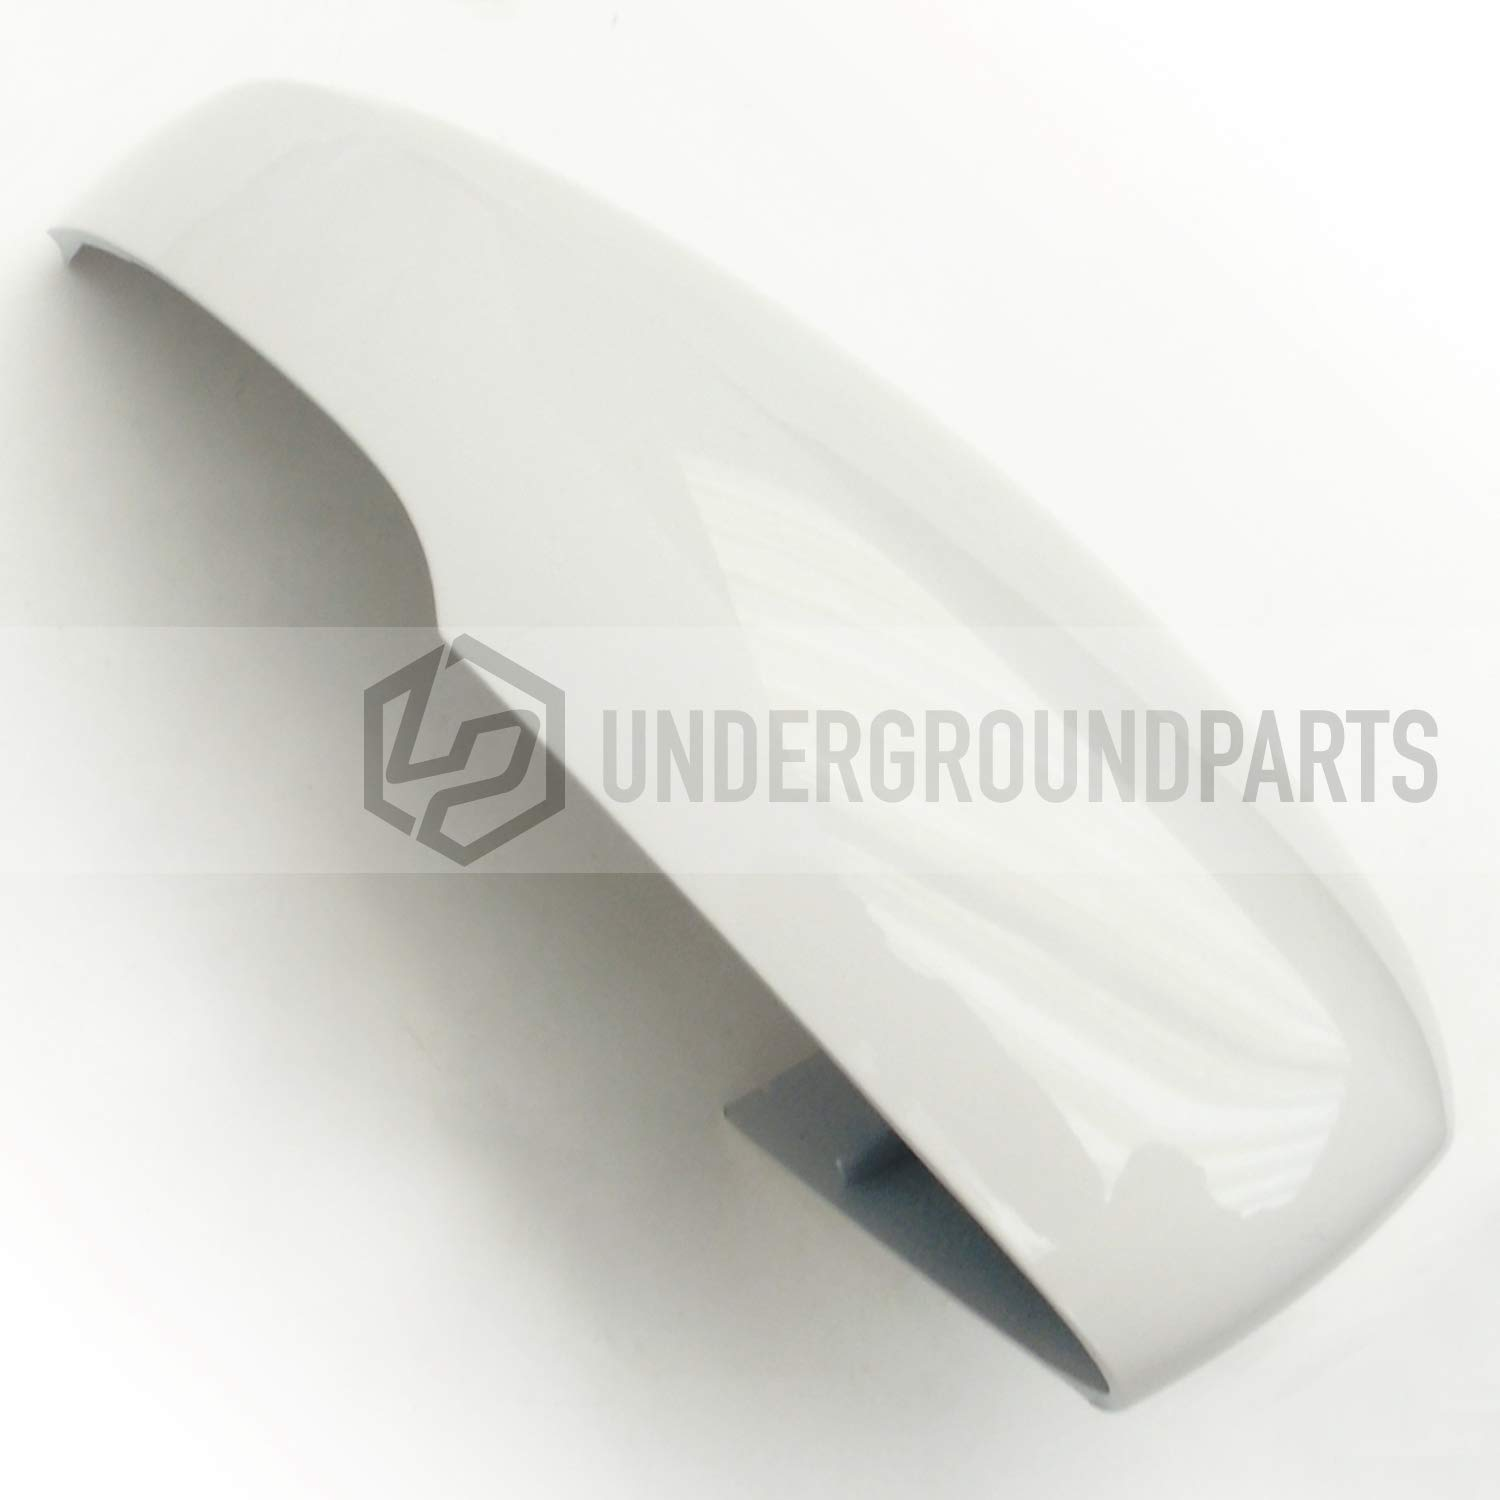 Underground Parts - Candy White Door Wing Mirror Cover Casing Cap - Right Drivers Side